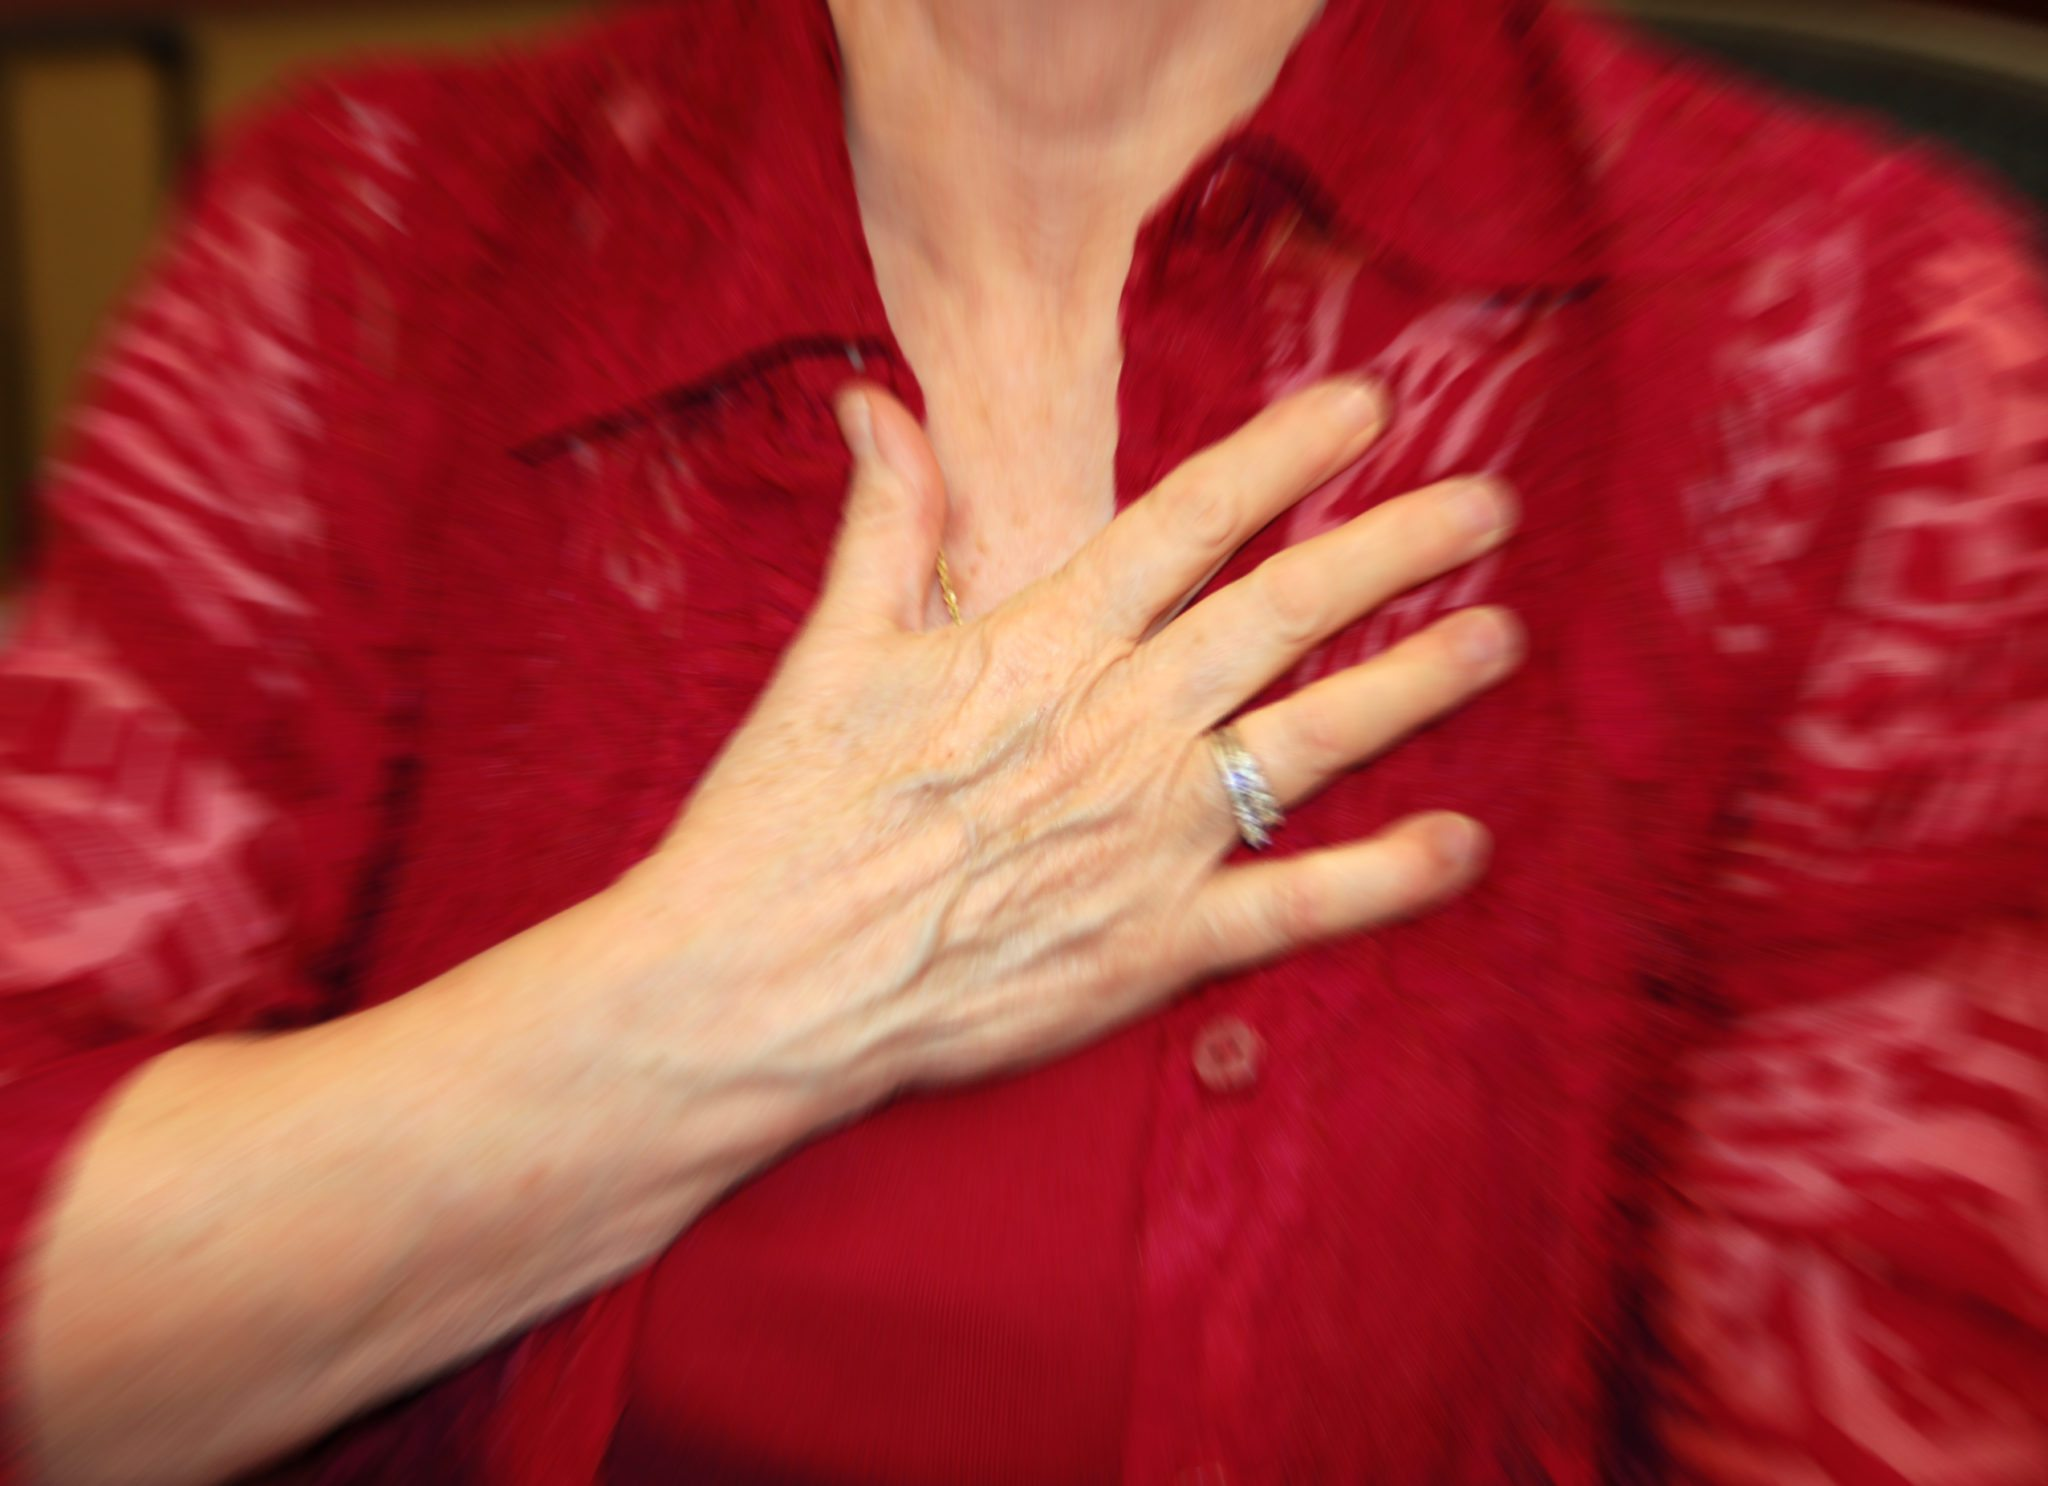 Woman placing hand over her heart